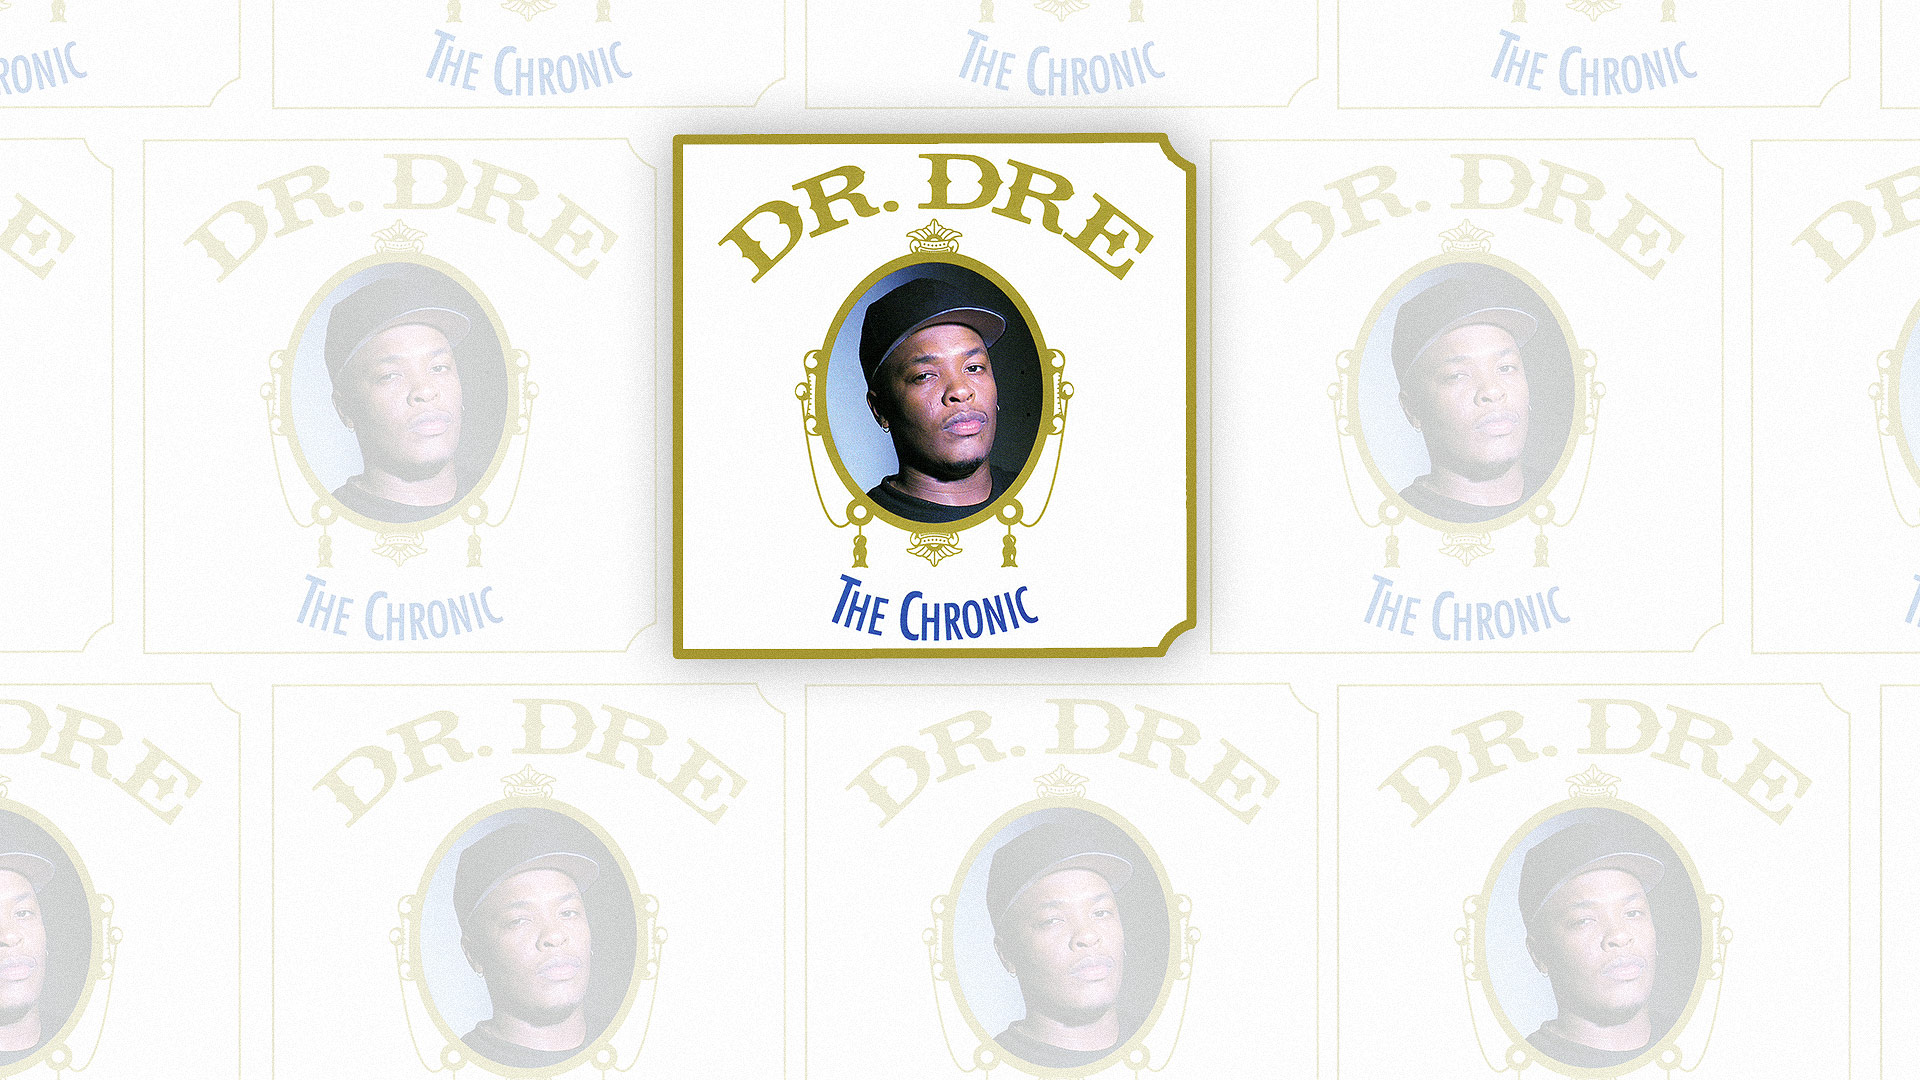 Dr. Dre: The Chronic